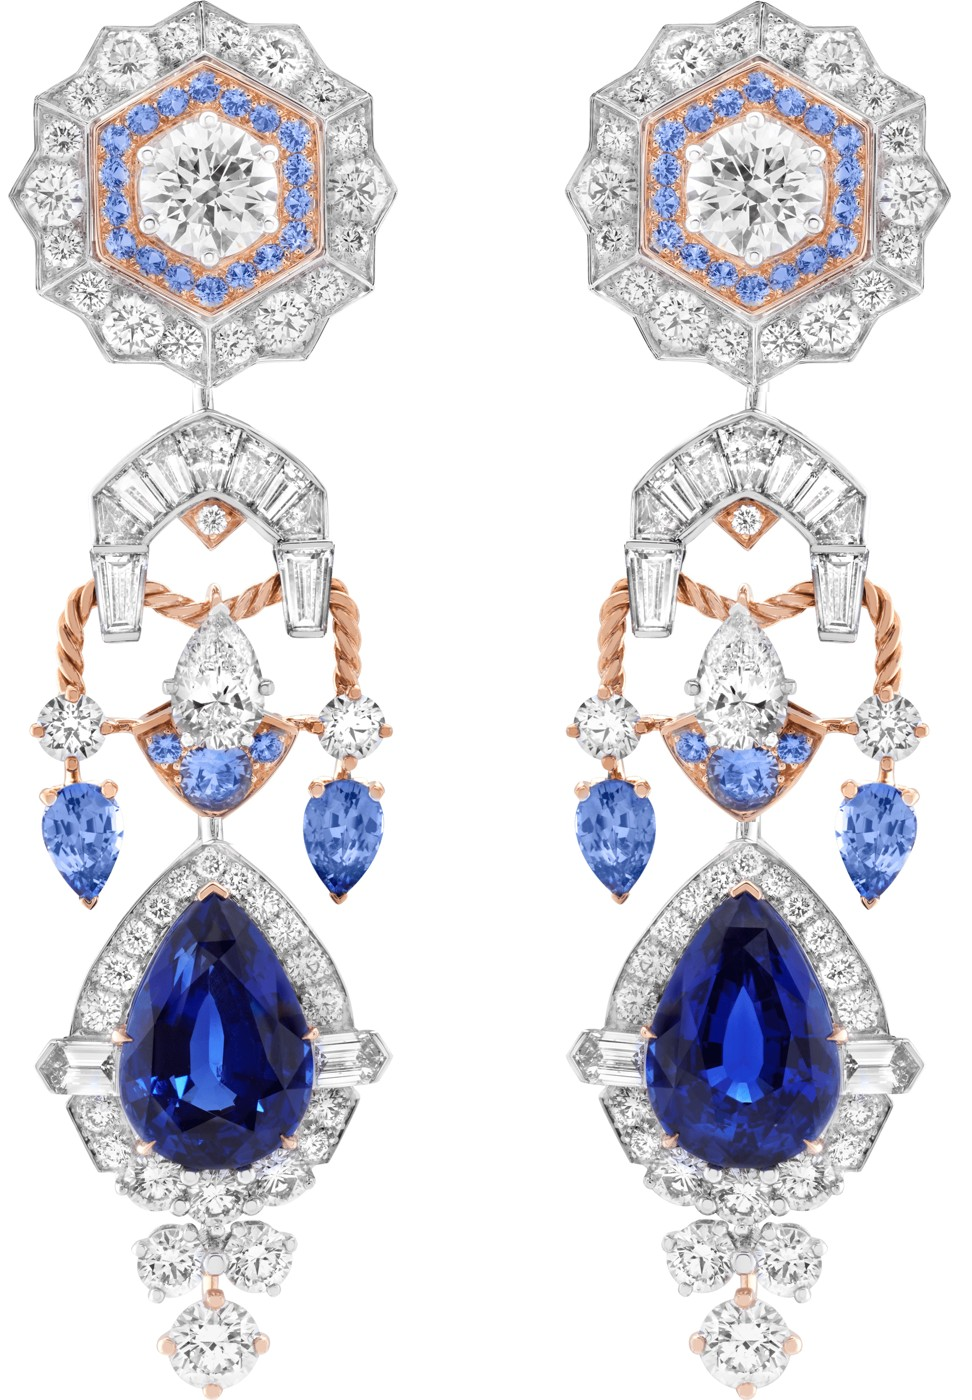 Lovia with detachable sapphire pendants from Van Cleef & Arpels' Romeo and Juliet Collection.